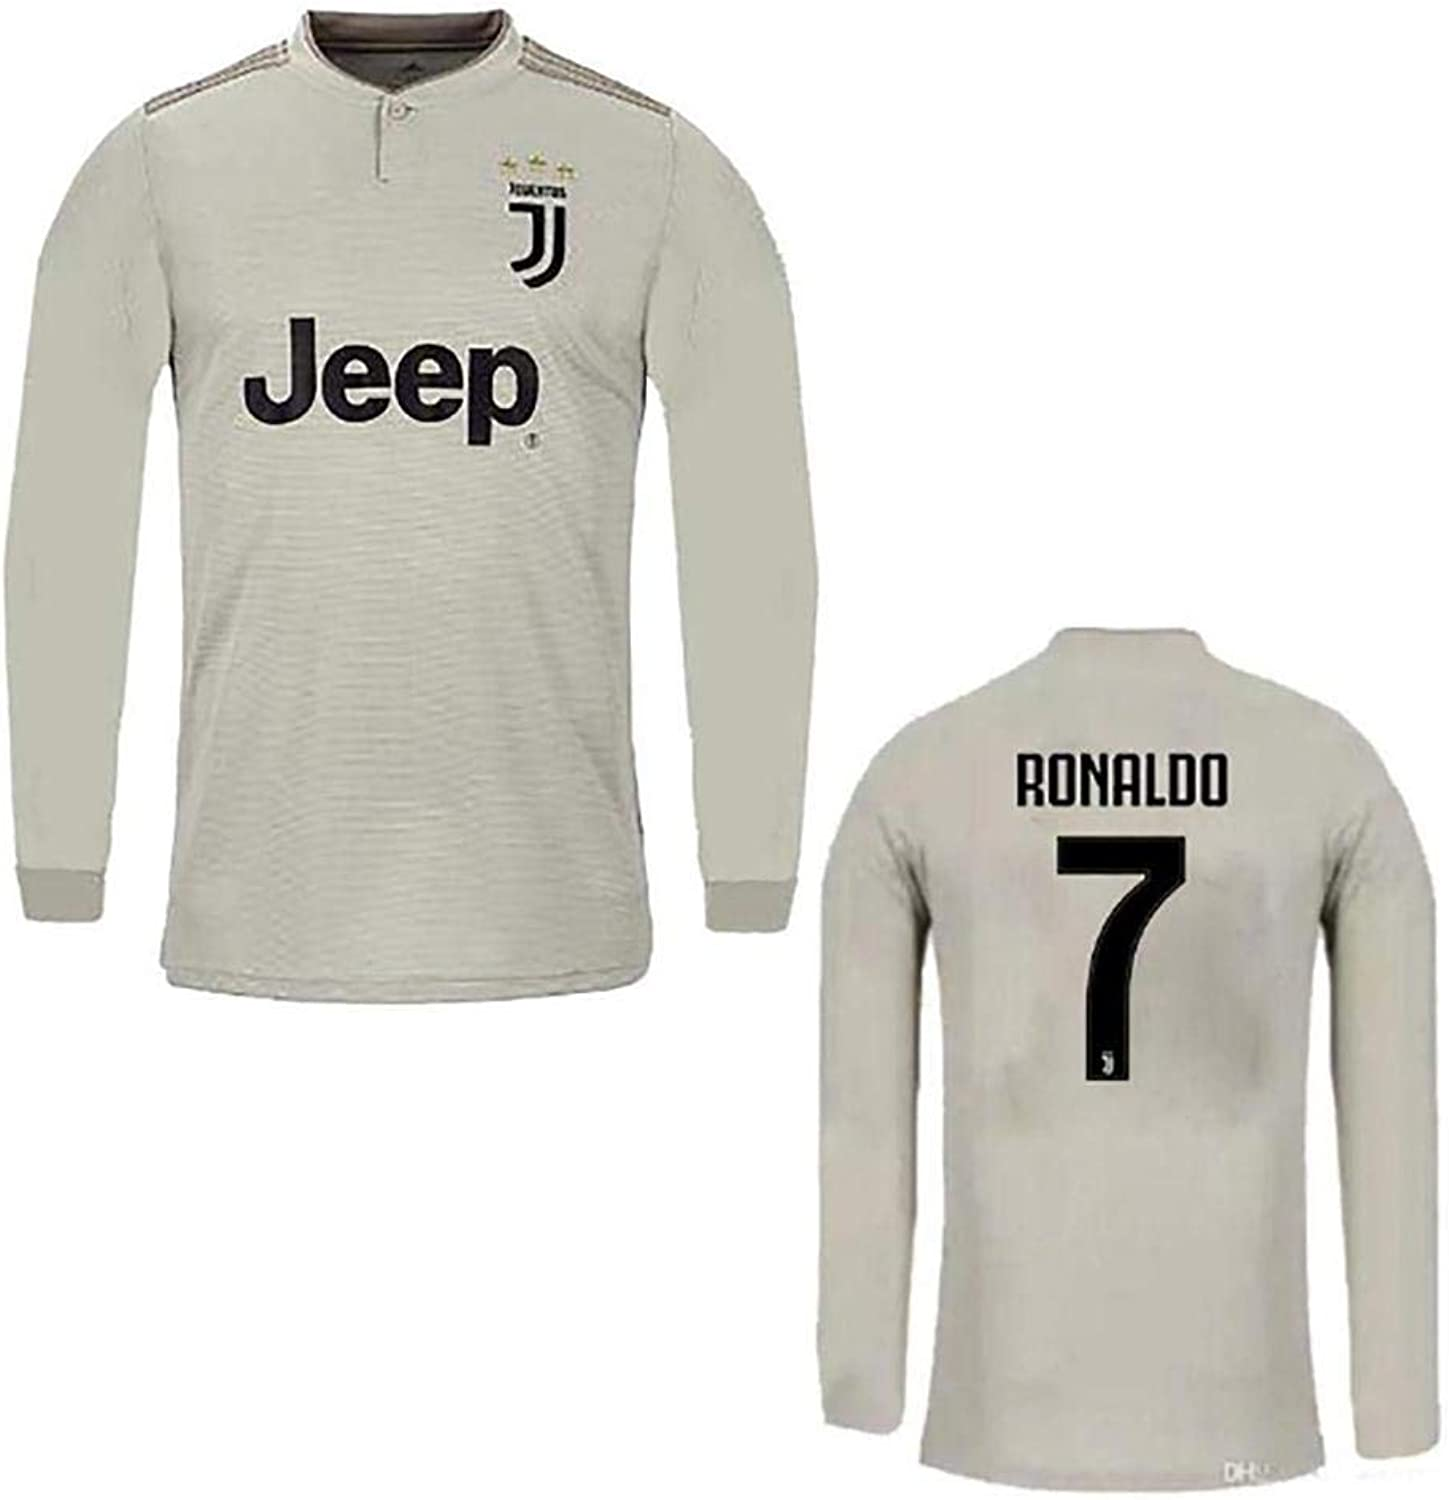 half off ef7c8 dff22 GoFall 2019 Jersey Men's Long Sleeve Juventus Third color No ...